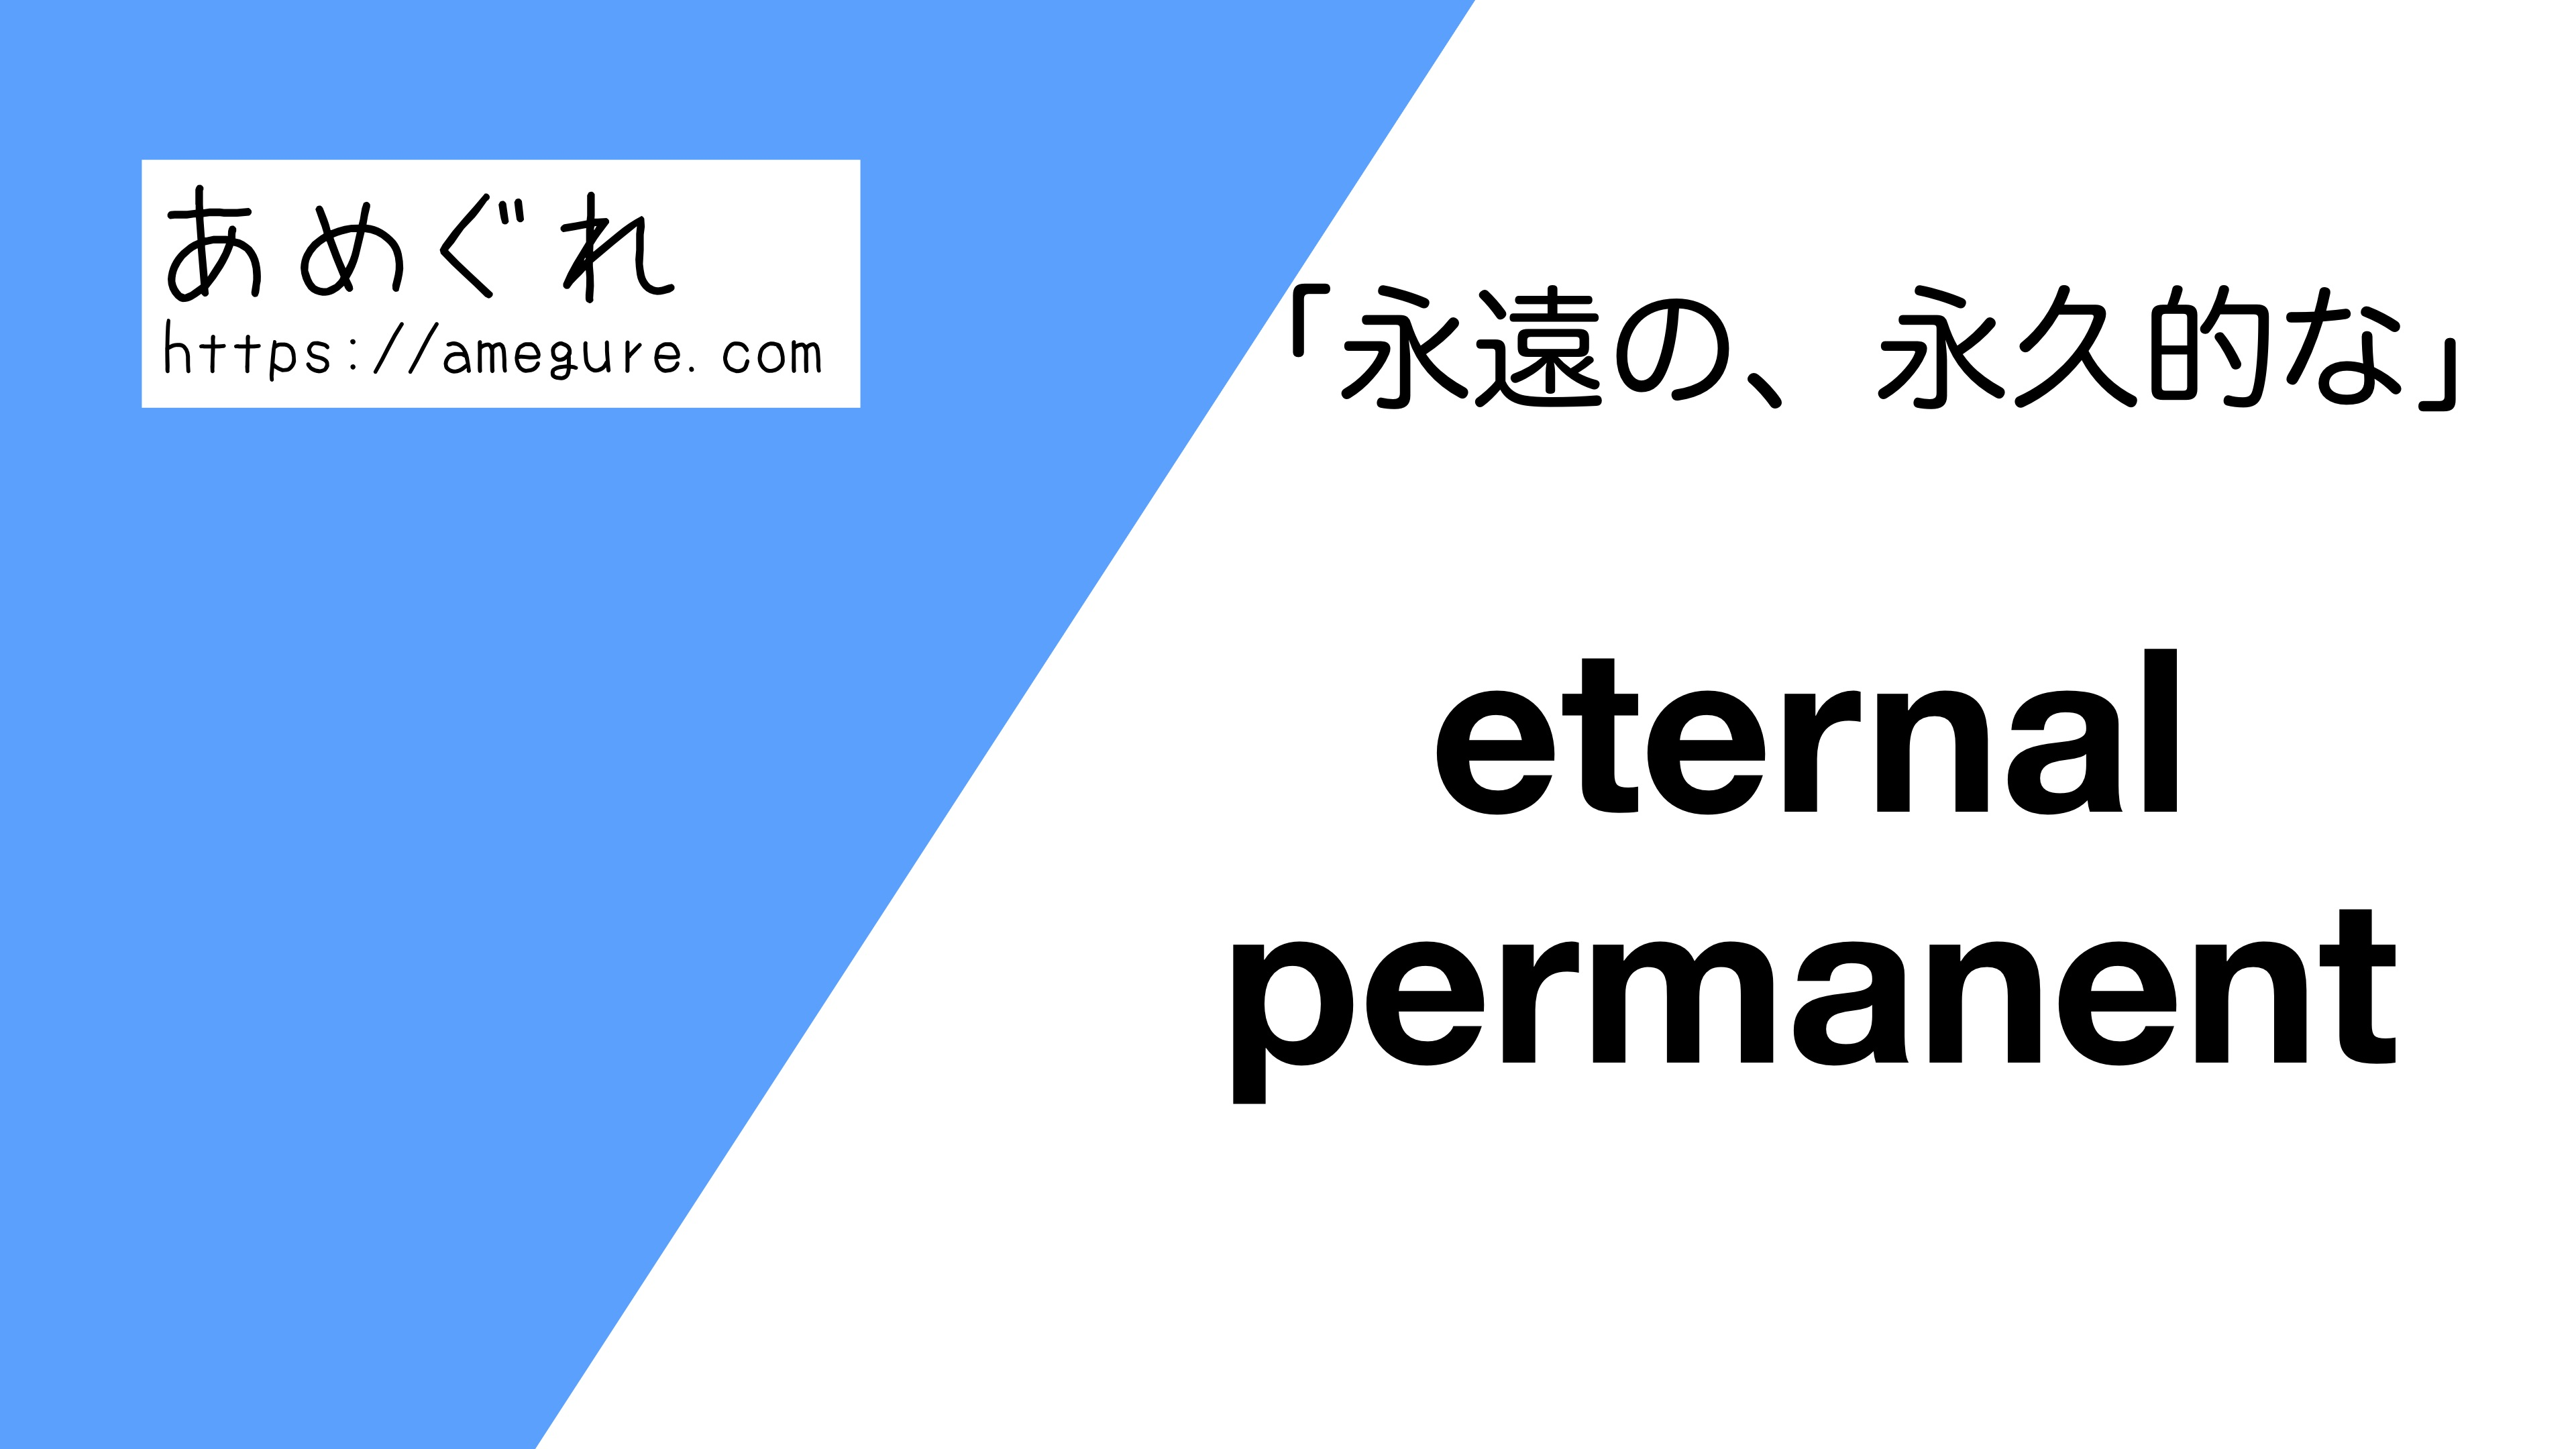 eternal-permanent違い